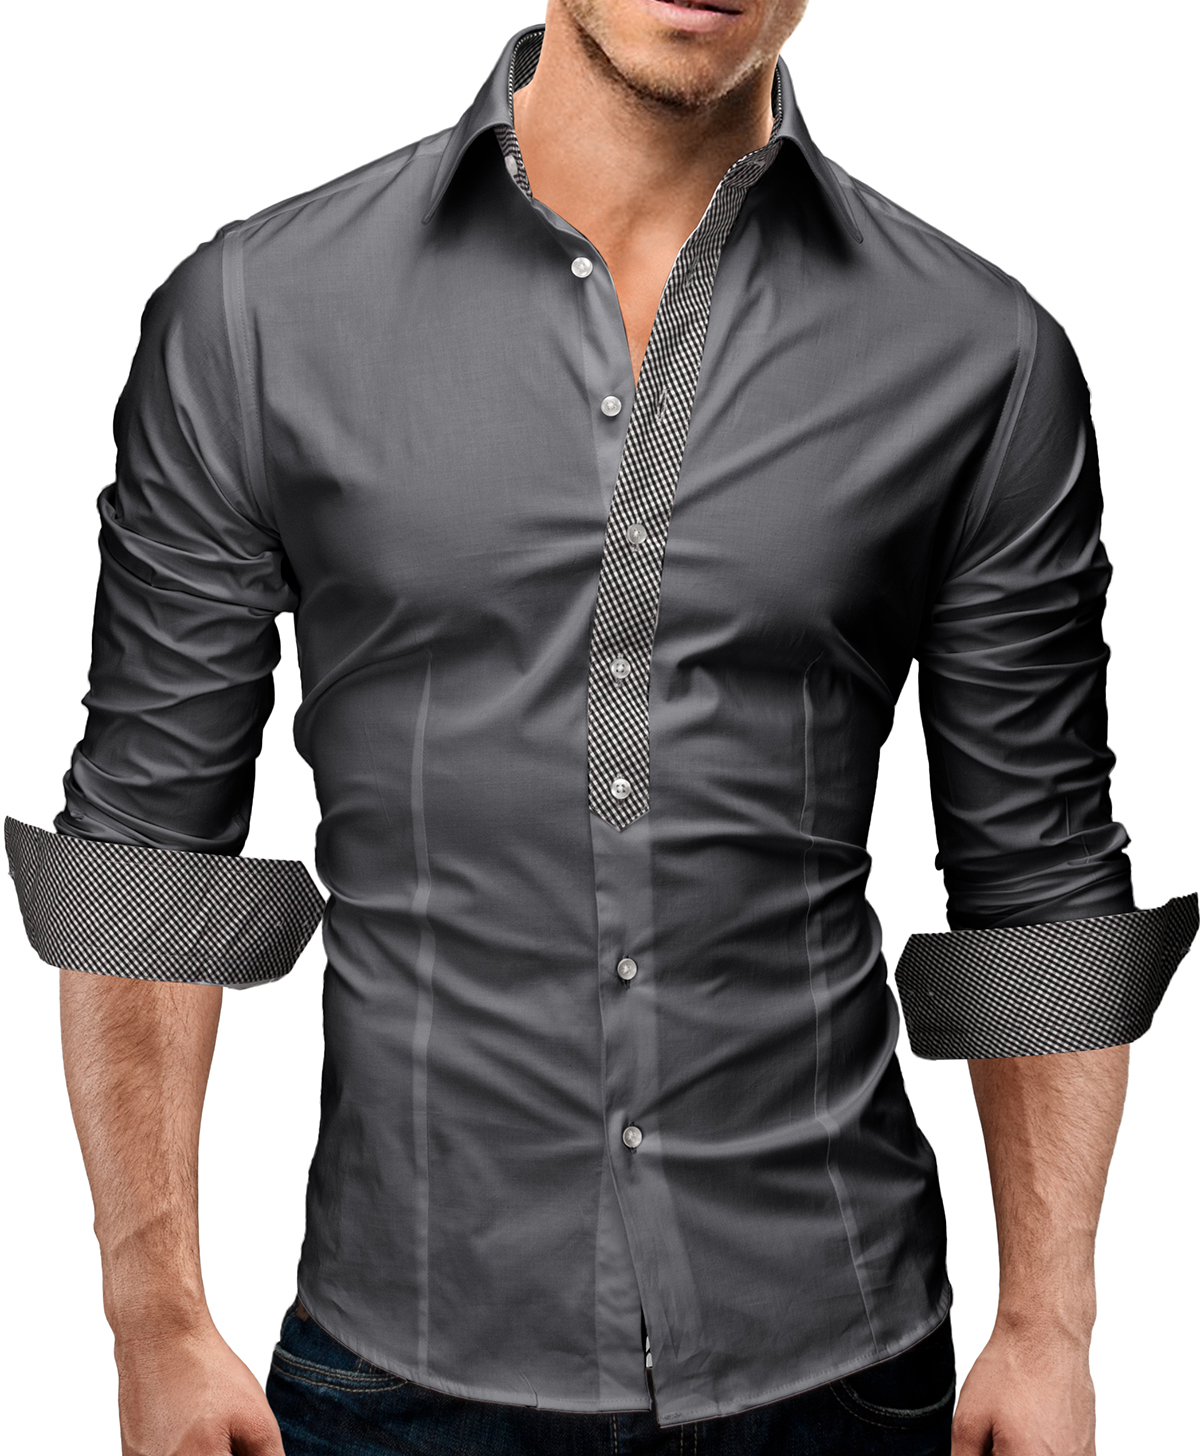 details about merish herren hemd 6 modelle s xxl slim fit neu t shirt. Black Bedroom Furniture Sets. Home Design Ideas